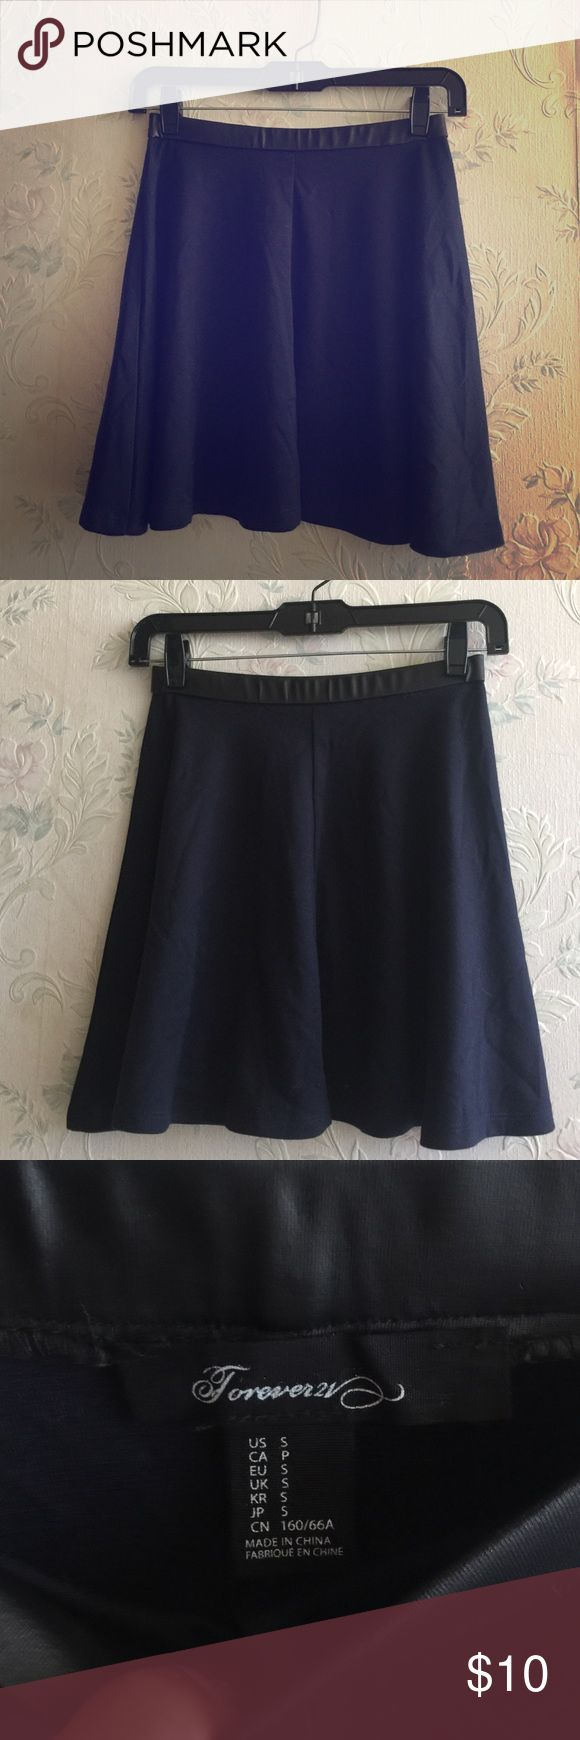 Navy blue skater skirt Navy blue skater skirt with leather detailing. Worn once still looks brand new Forever 21 Skirts Mini